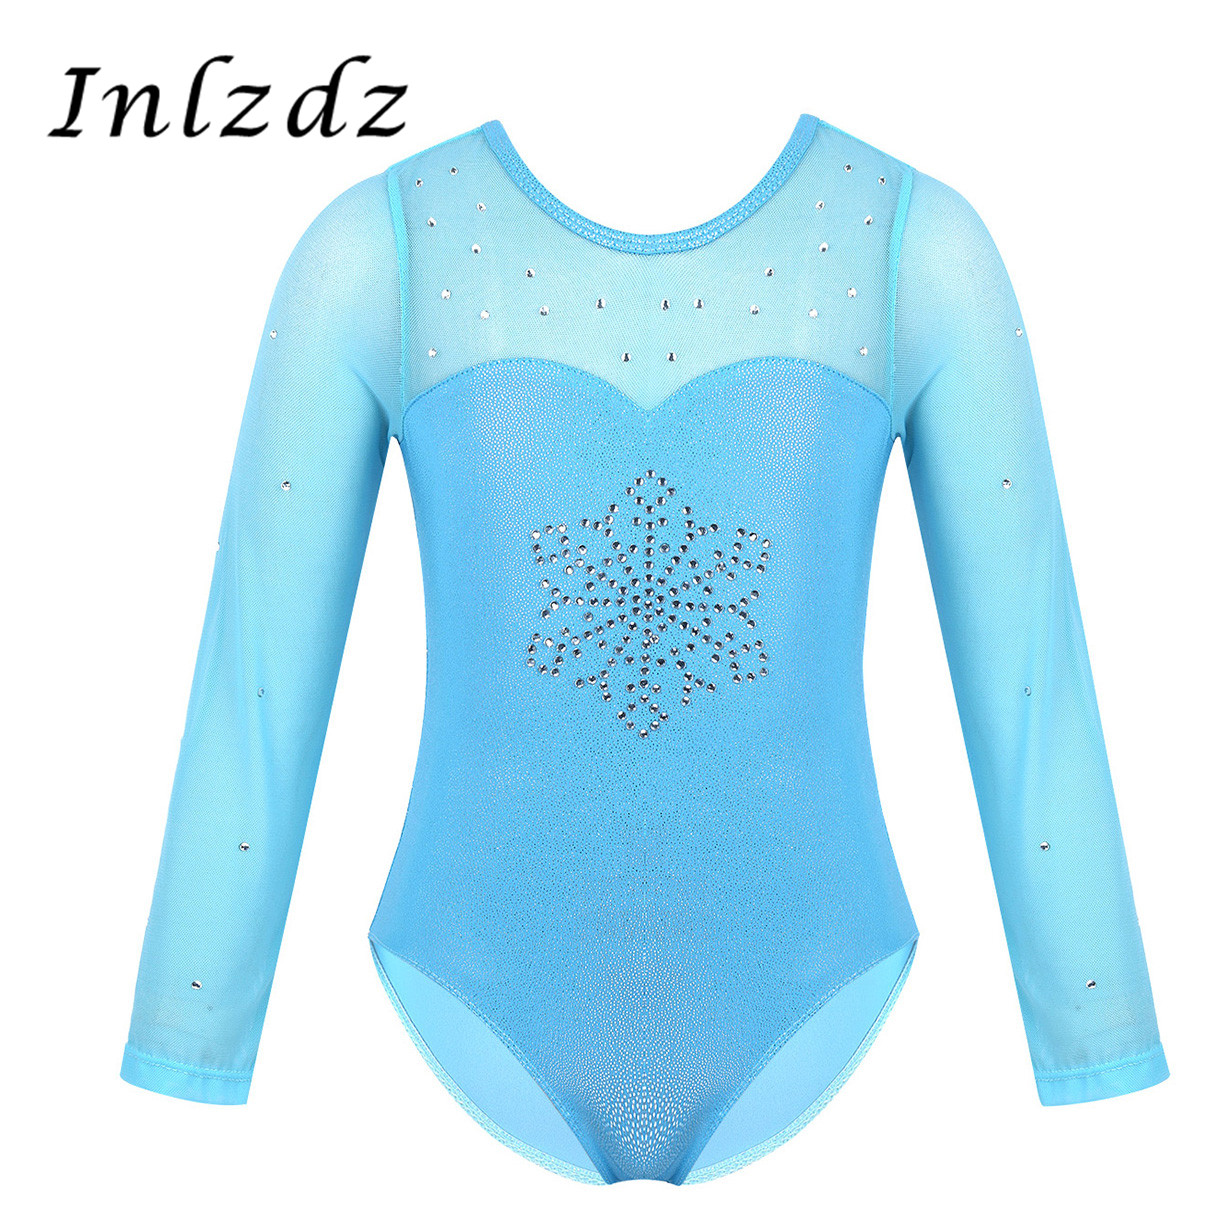 Kids Girls Gymnastics Swimsuit For Dancing Rhinestone Snowflake Tulle Dancewear Splice Gymnastics Leotard Ballet Dance Bodysuit